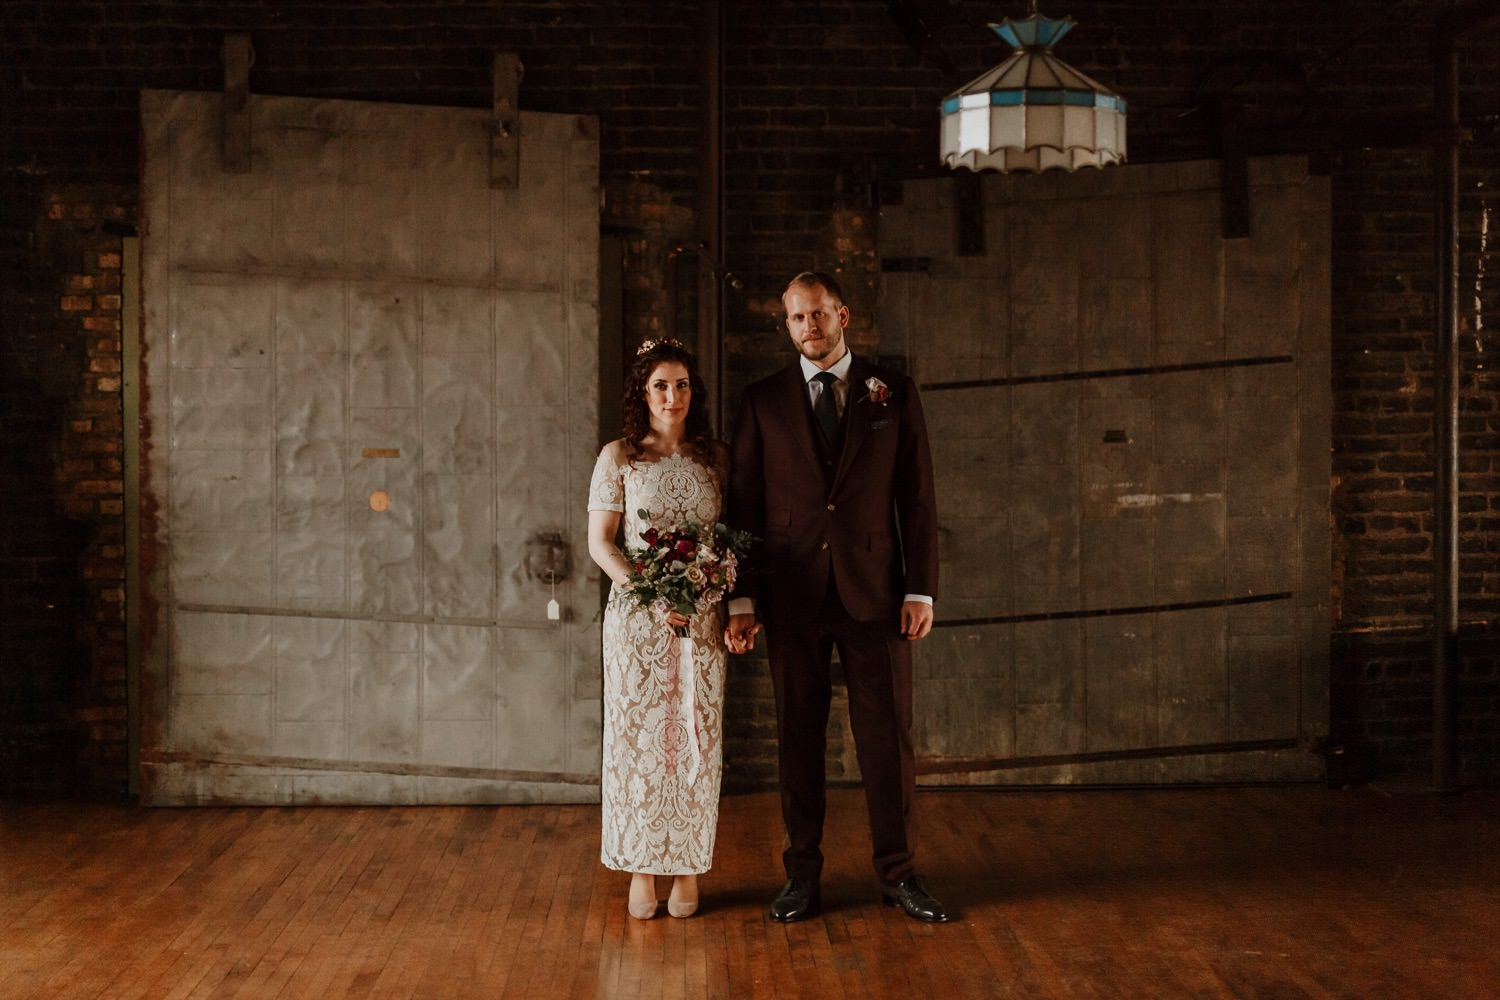 Classic portrait of the bride and groom taken at Salvage One during the ceremony